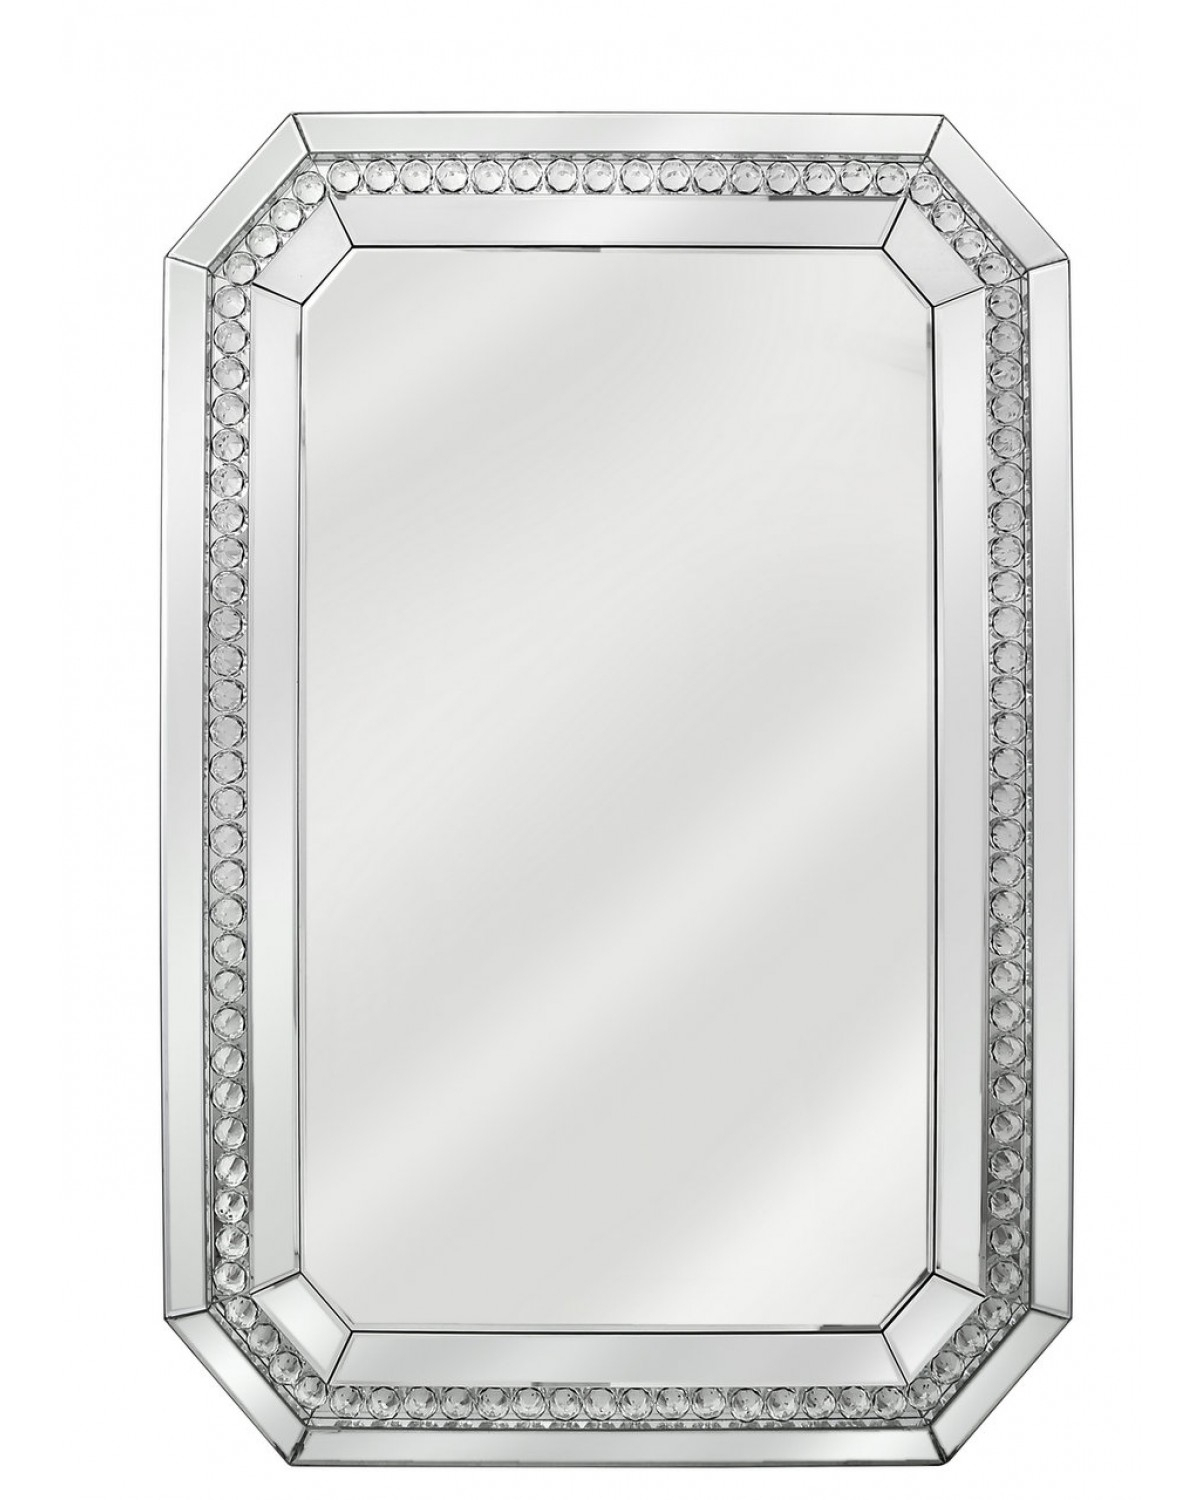 Neoteric Crystal Wall Mirror Glitz Floral Modern Rectangle In Sajish Oval Crystal Wall Mirrors (View 13 of 30)